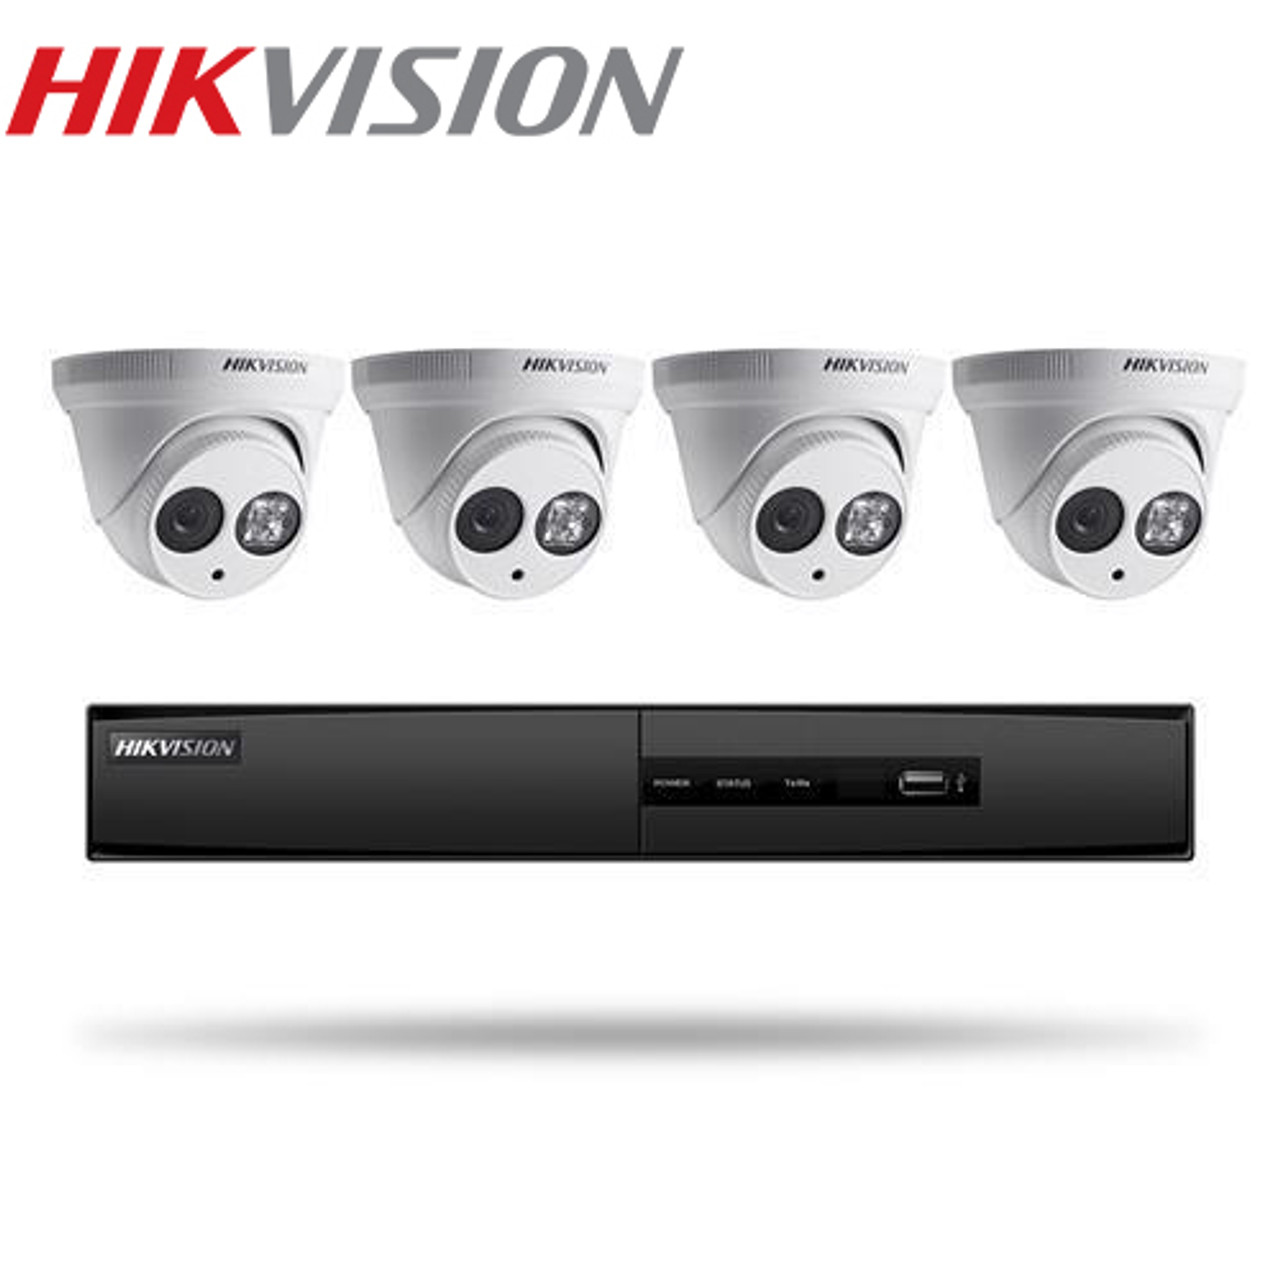 Hikvision IP Security Camera Kit, 4 - Channel 5MP NVR with 1TB HDD and 6 x  4MP Outdoor Turret Cameras